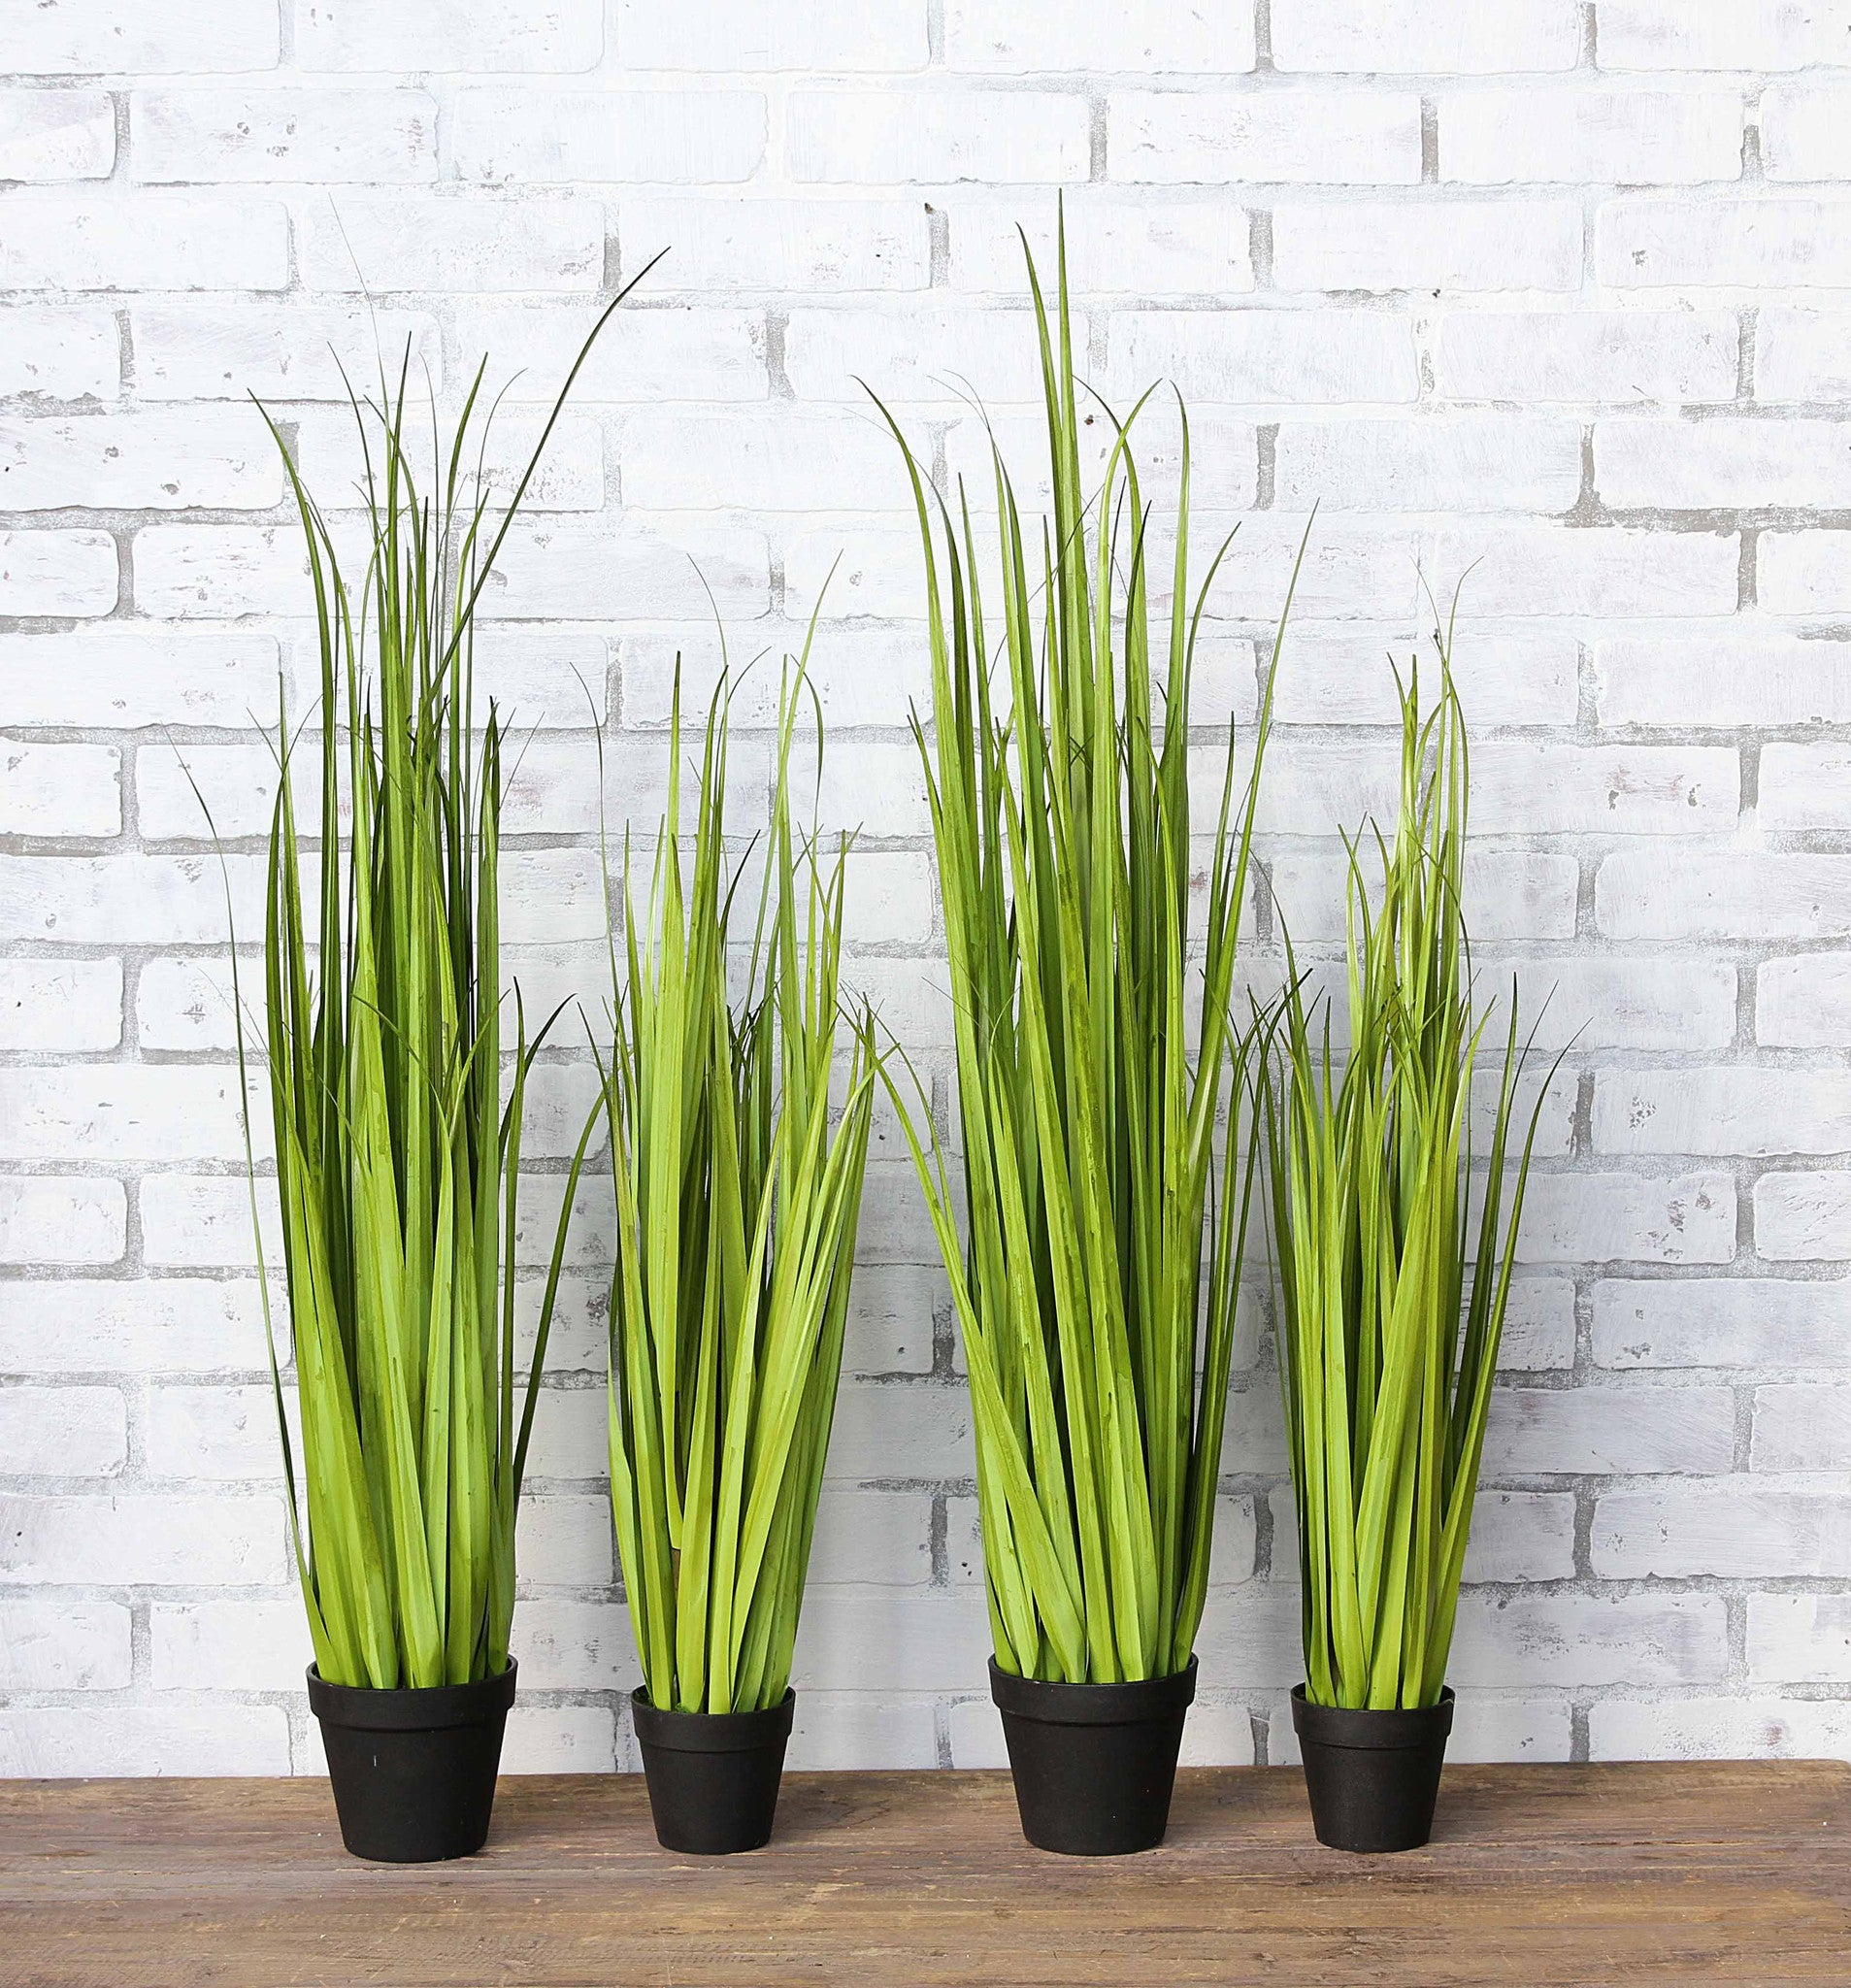 Potted Onion Grass